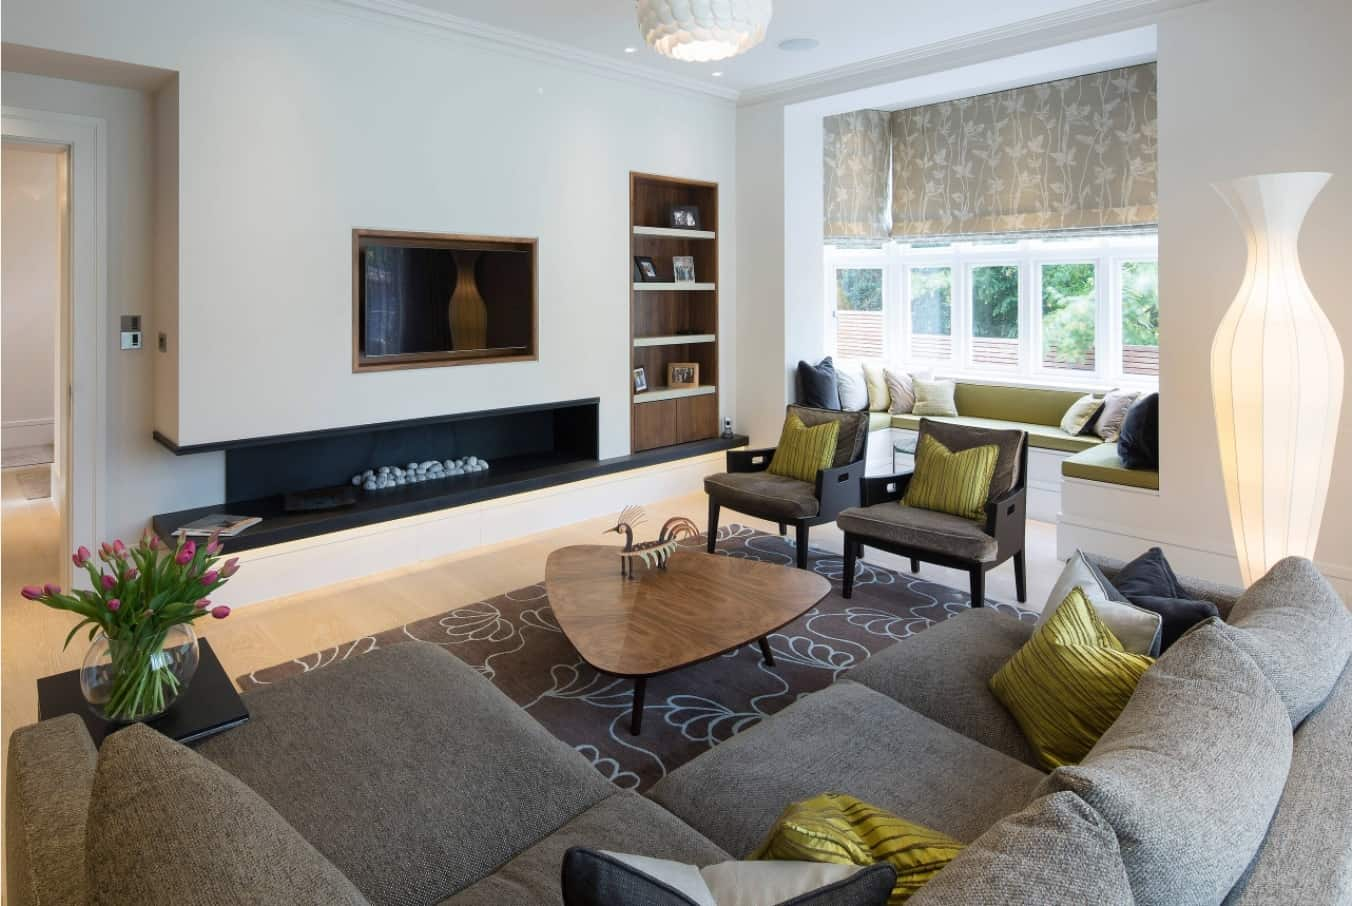 The Best Tips for Living Room Decoration. Contemporary living with built-in fireplace, bookshelf, abundance of low-key furniture